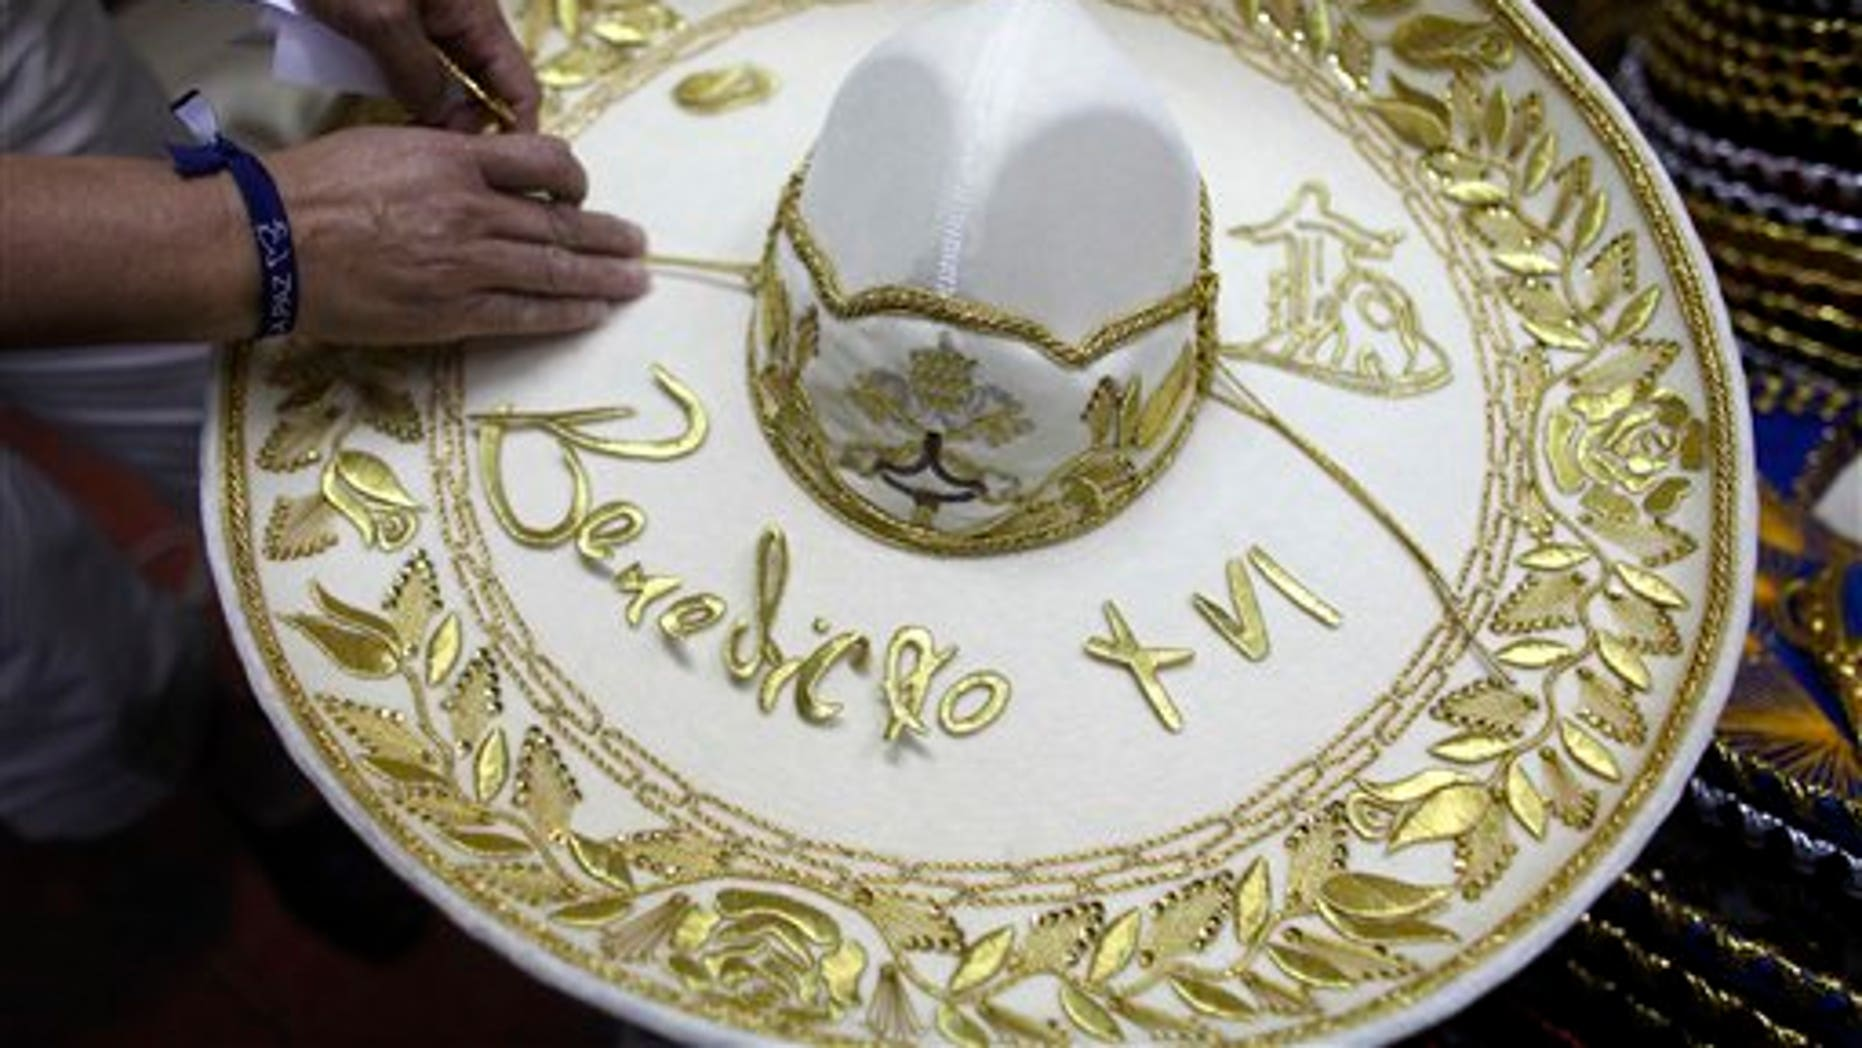 February 29, 2012: Maria de la Luz Yepes shows one of the sombrero's that will be given to Pope Benedict XVI, at her sombrero shop in the town of San Francisco del Rincon, near Leon, Mexico.